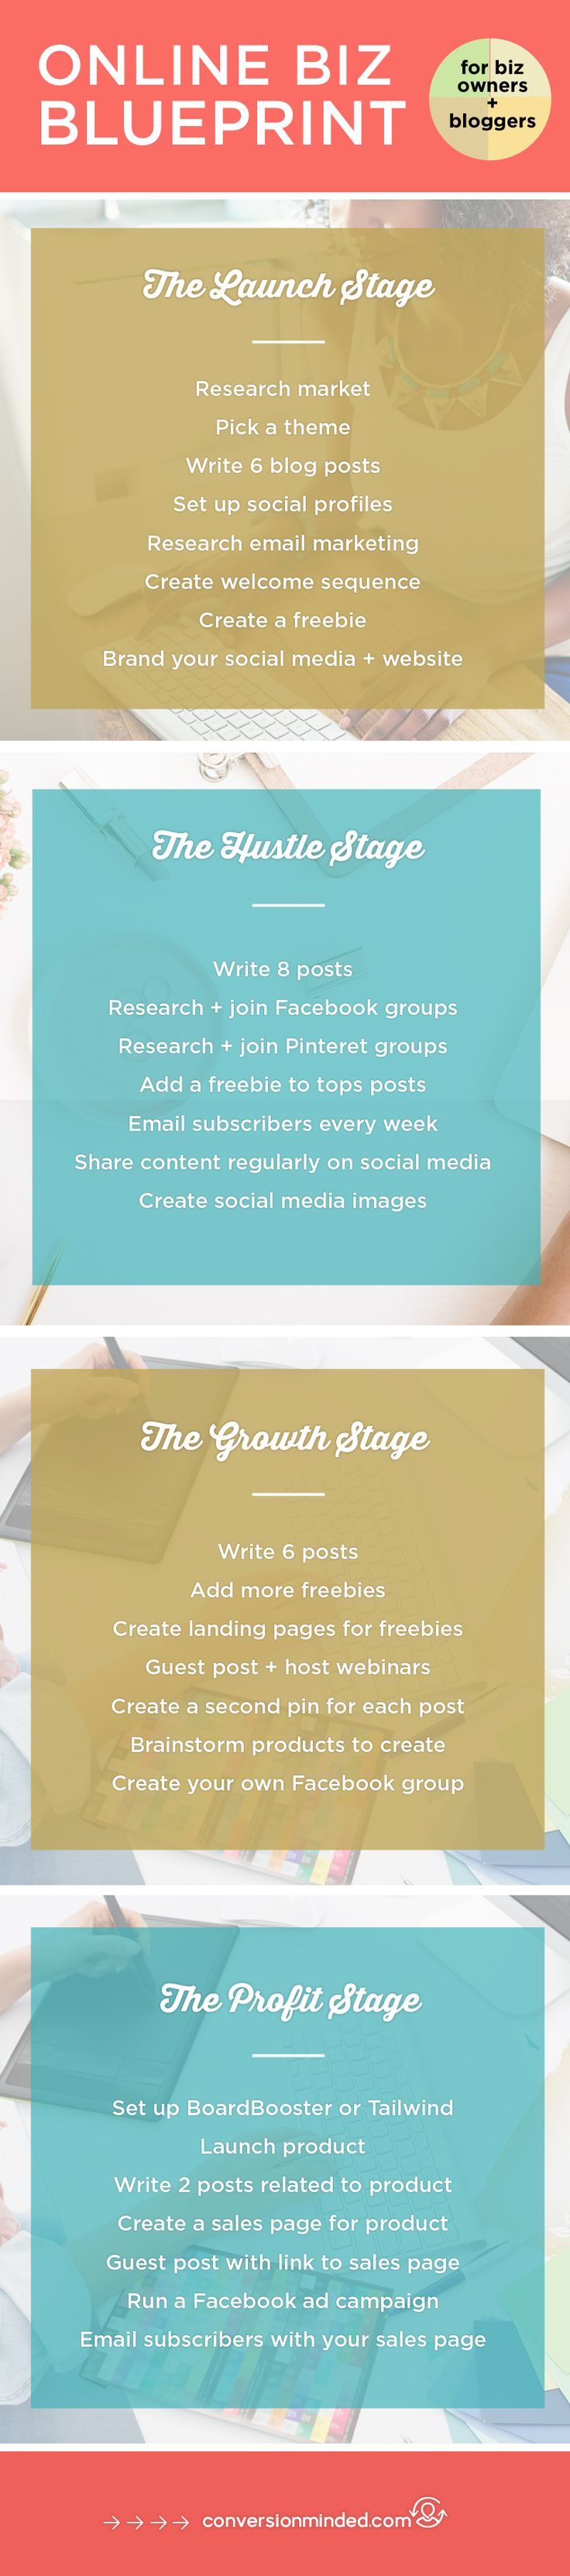 158 best conversionminded images on pinterest business tips the diy your biz blueprint malvernweather Choice Image